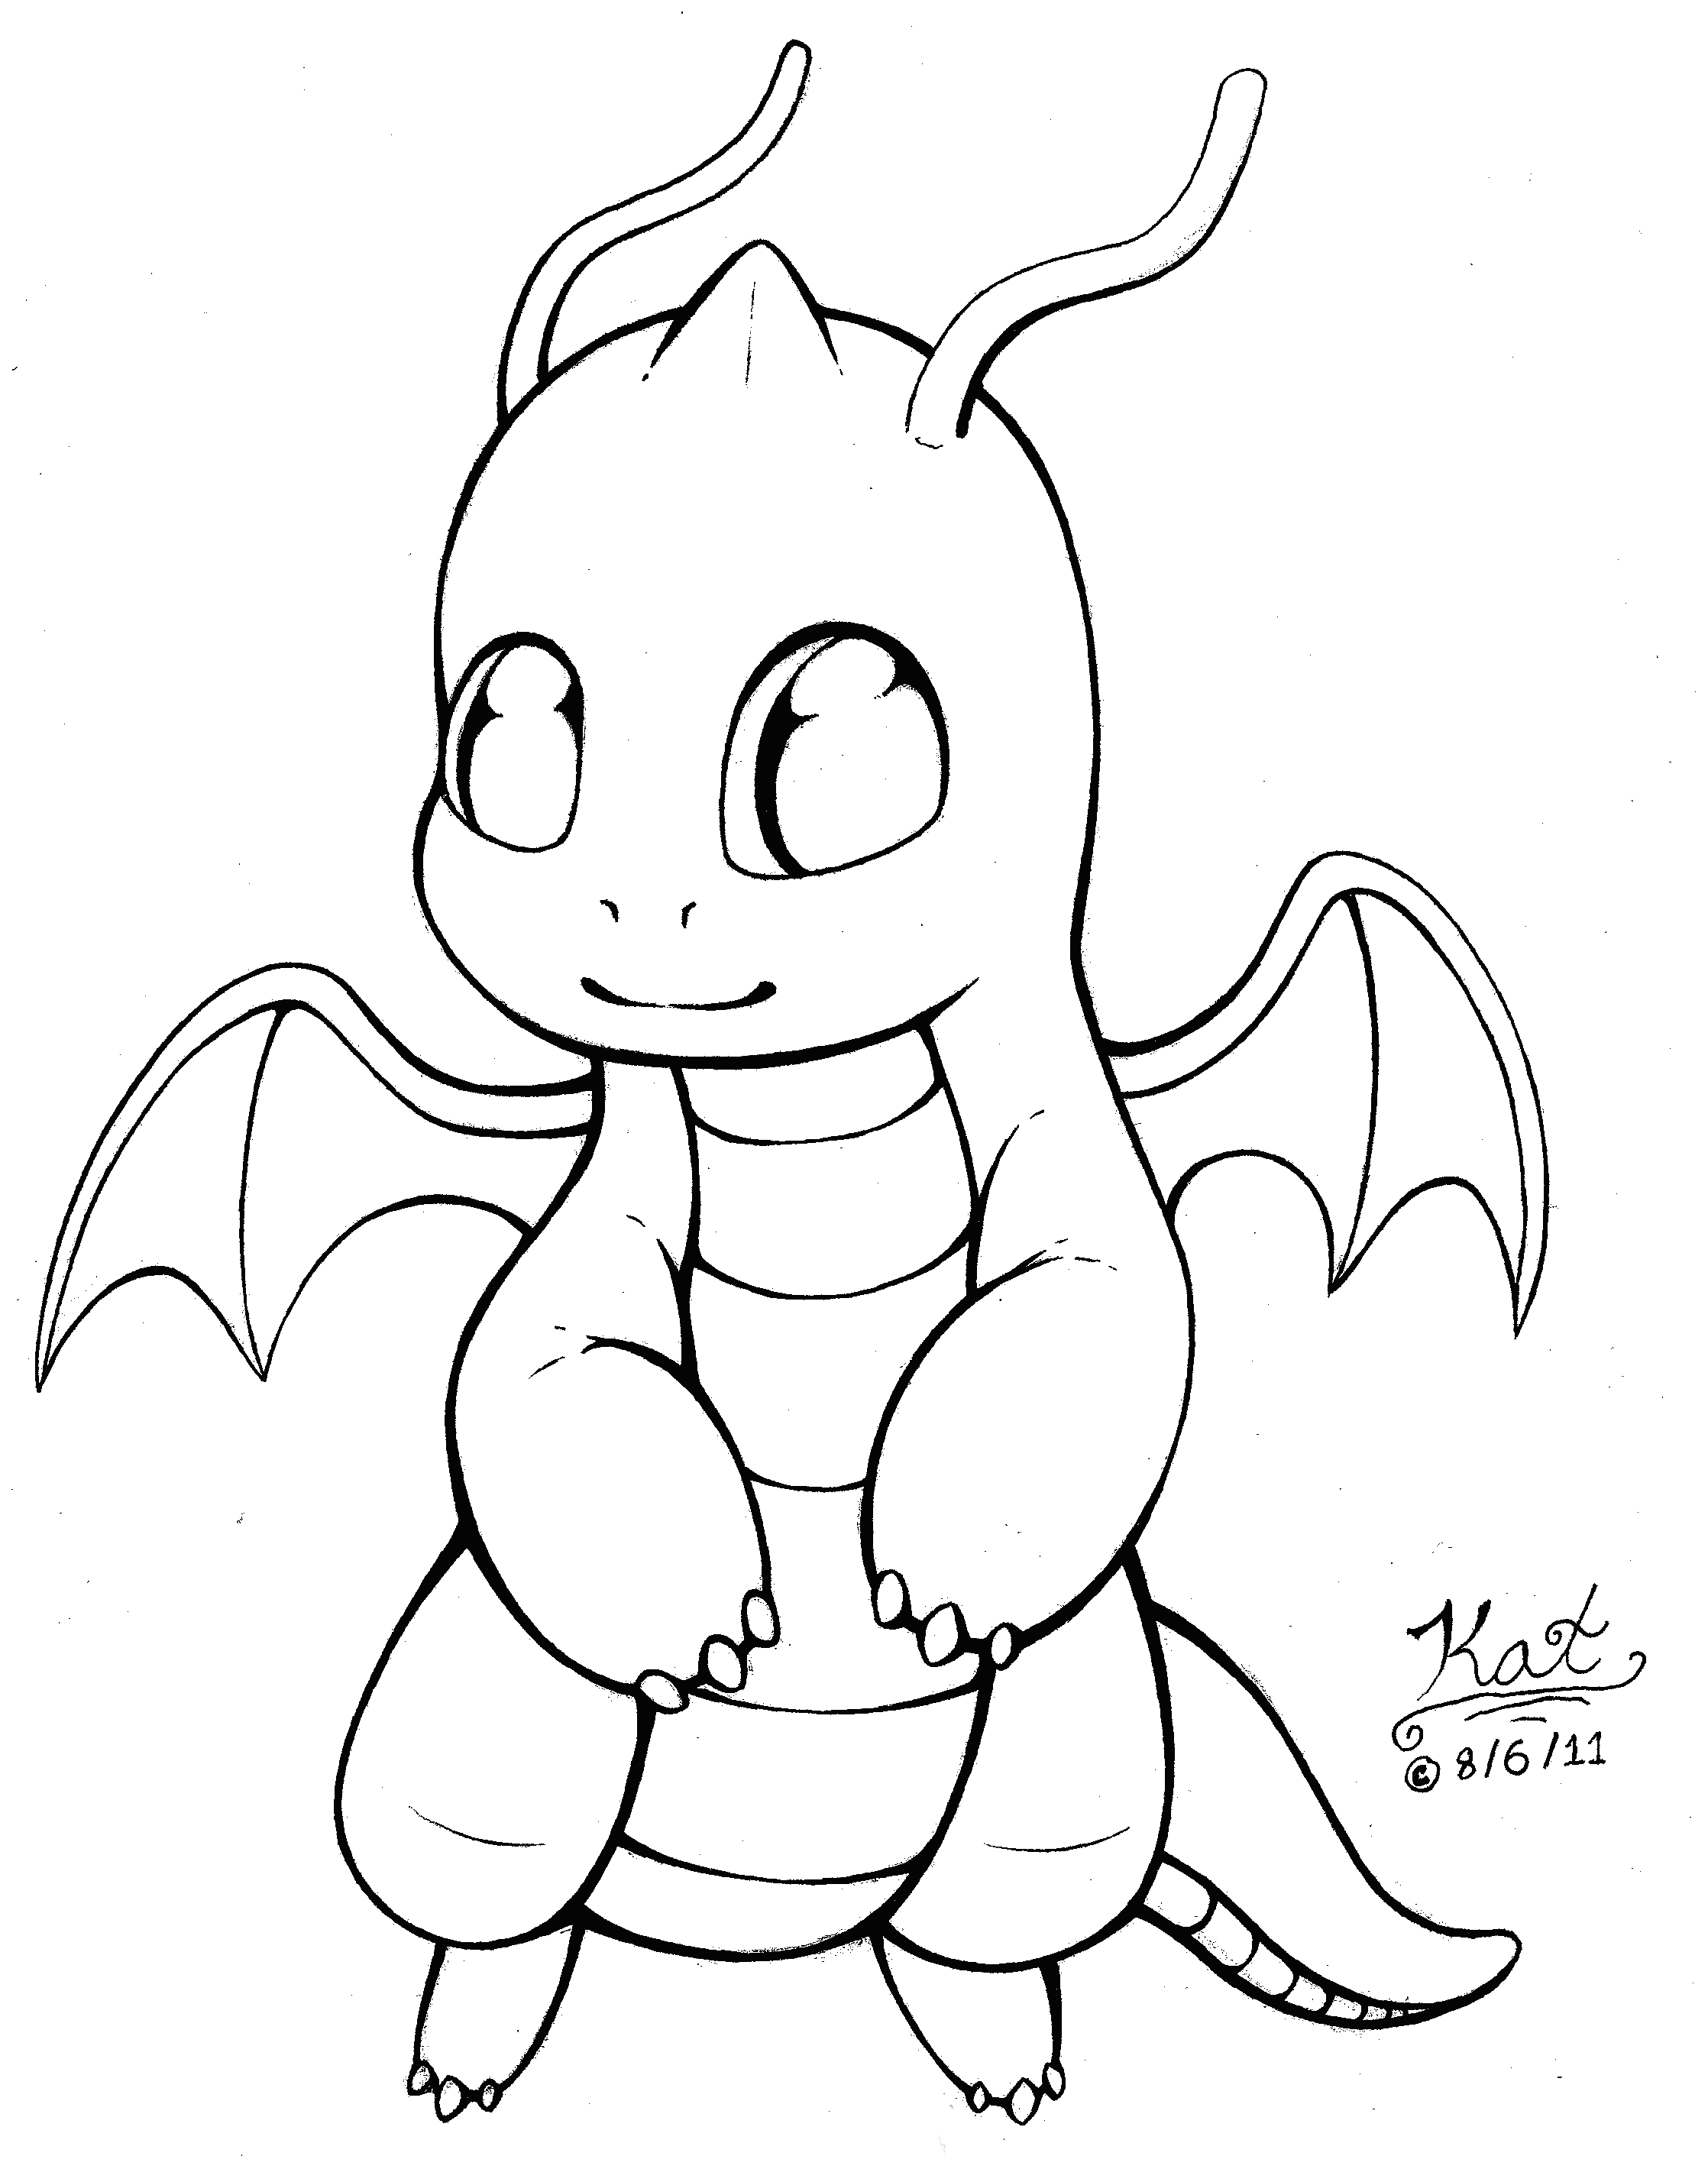 It's just an image of Impertinent Chibi Dragon Drawing